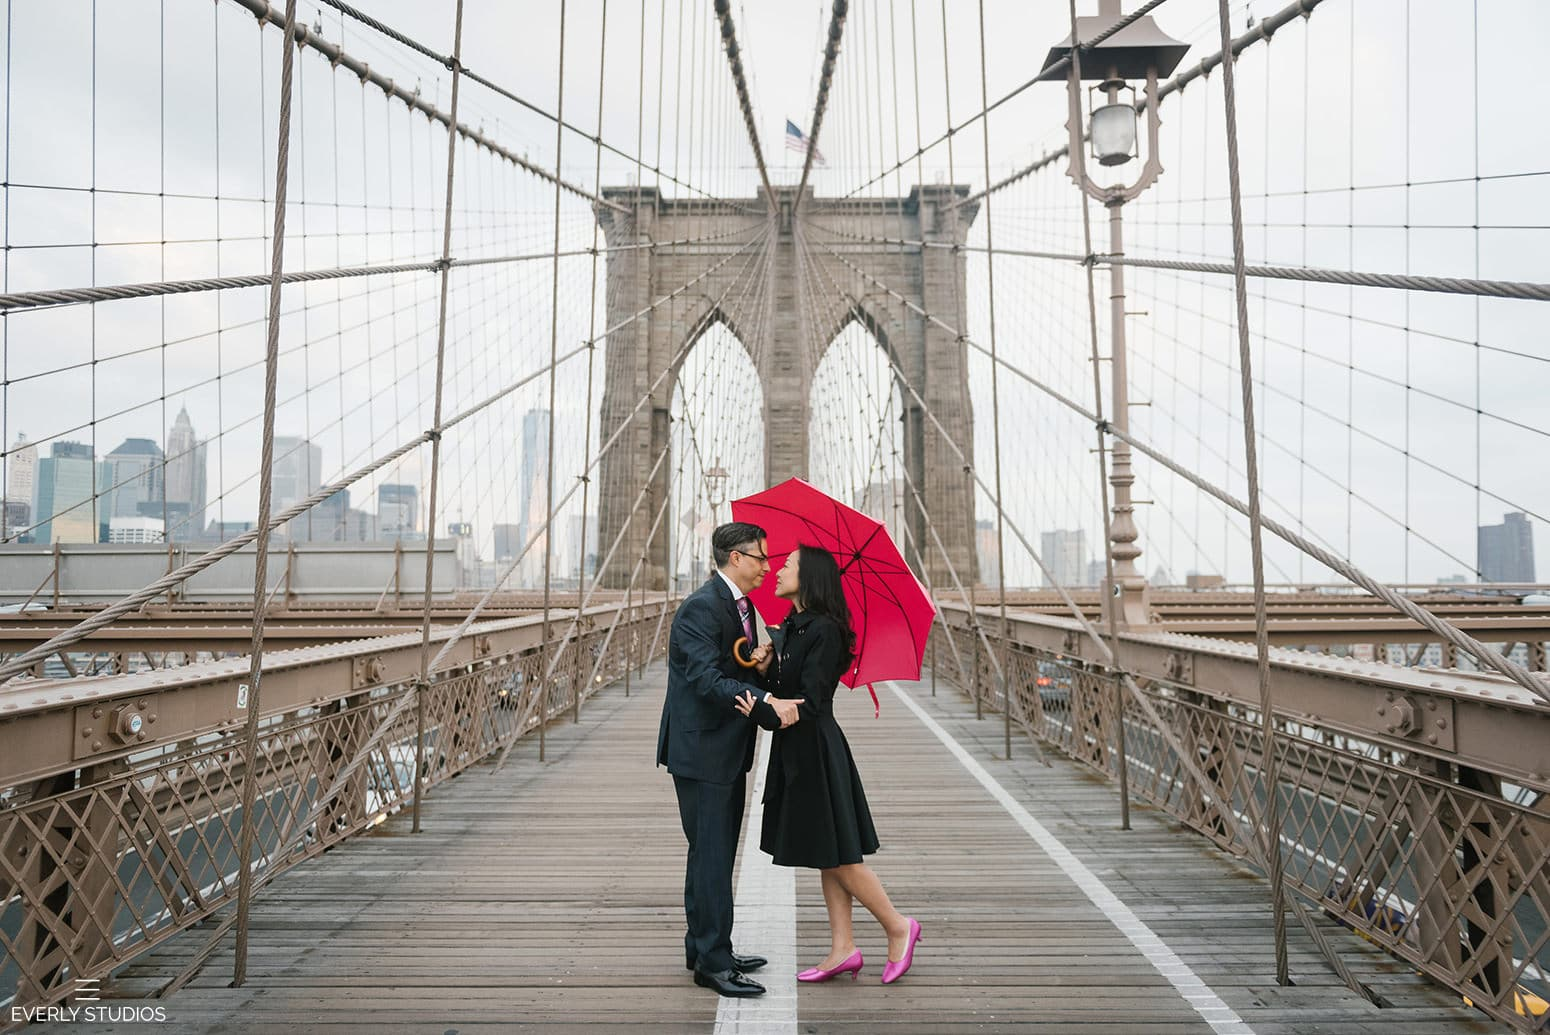 Brooklyn Bridge wedding. Iconic New York wedding locations with a view. Photo by Brooklyn wedding photographer Everly Studios, www.everlystudios.com